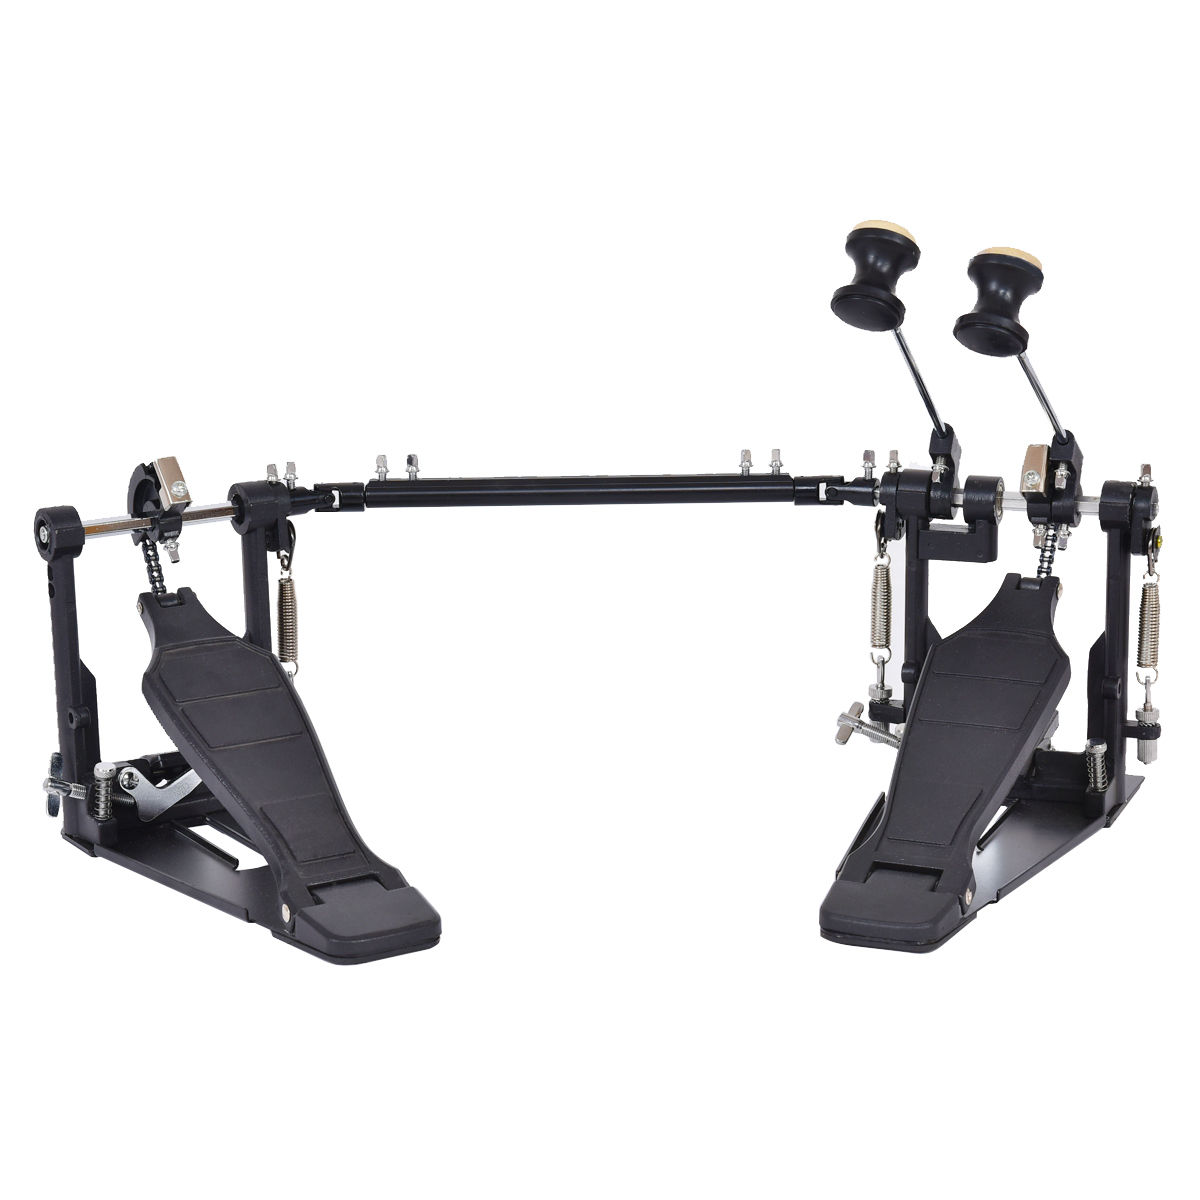 Costway Double Bass Drum Pedal Dual Pedal Foot Kick Percussion Drum Set Single Chain by Costway